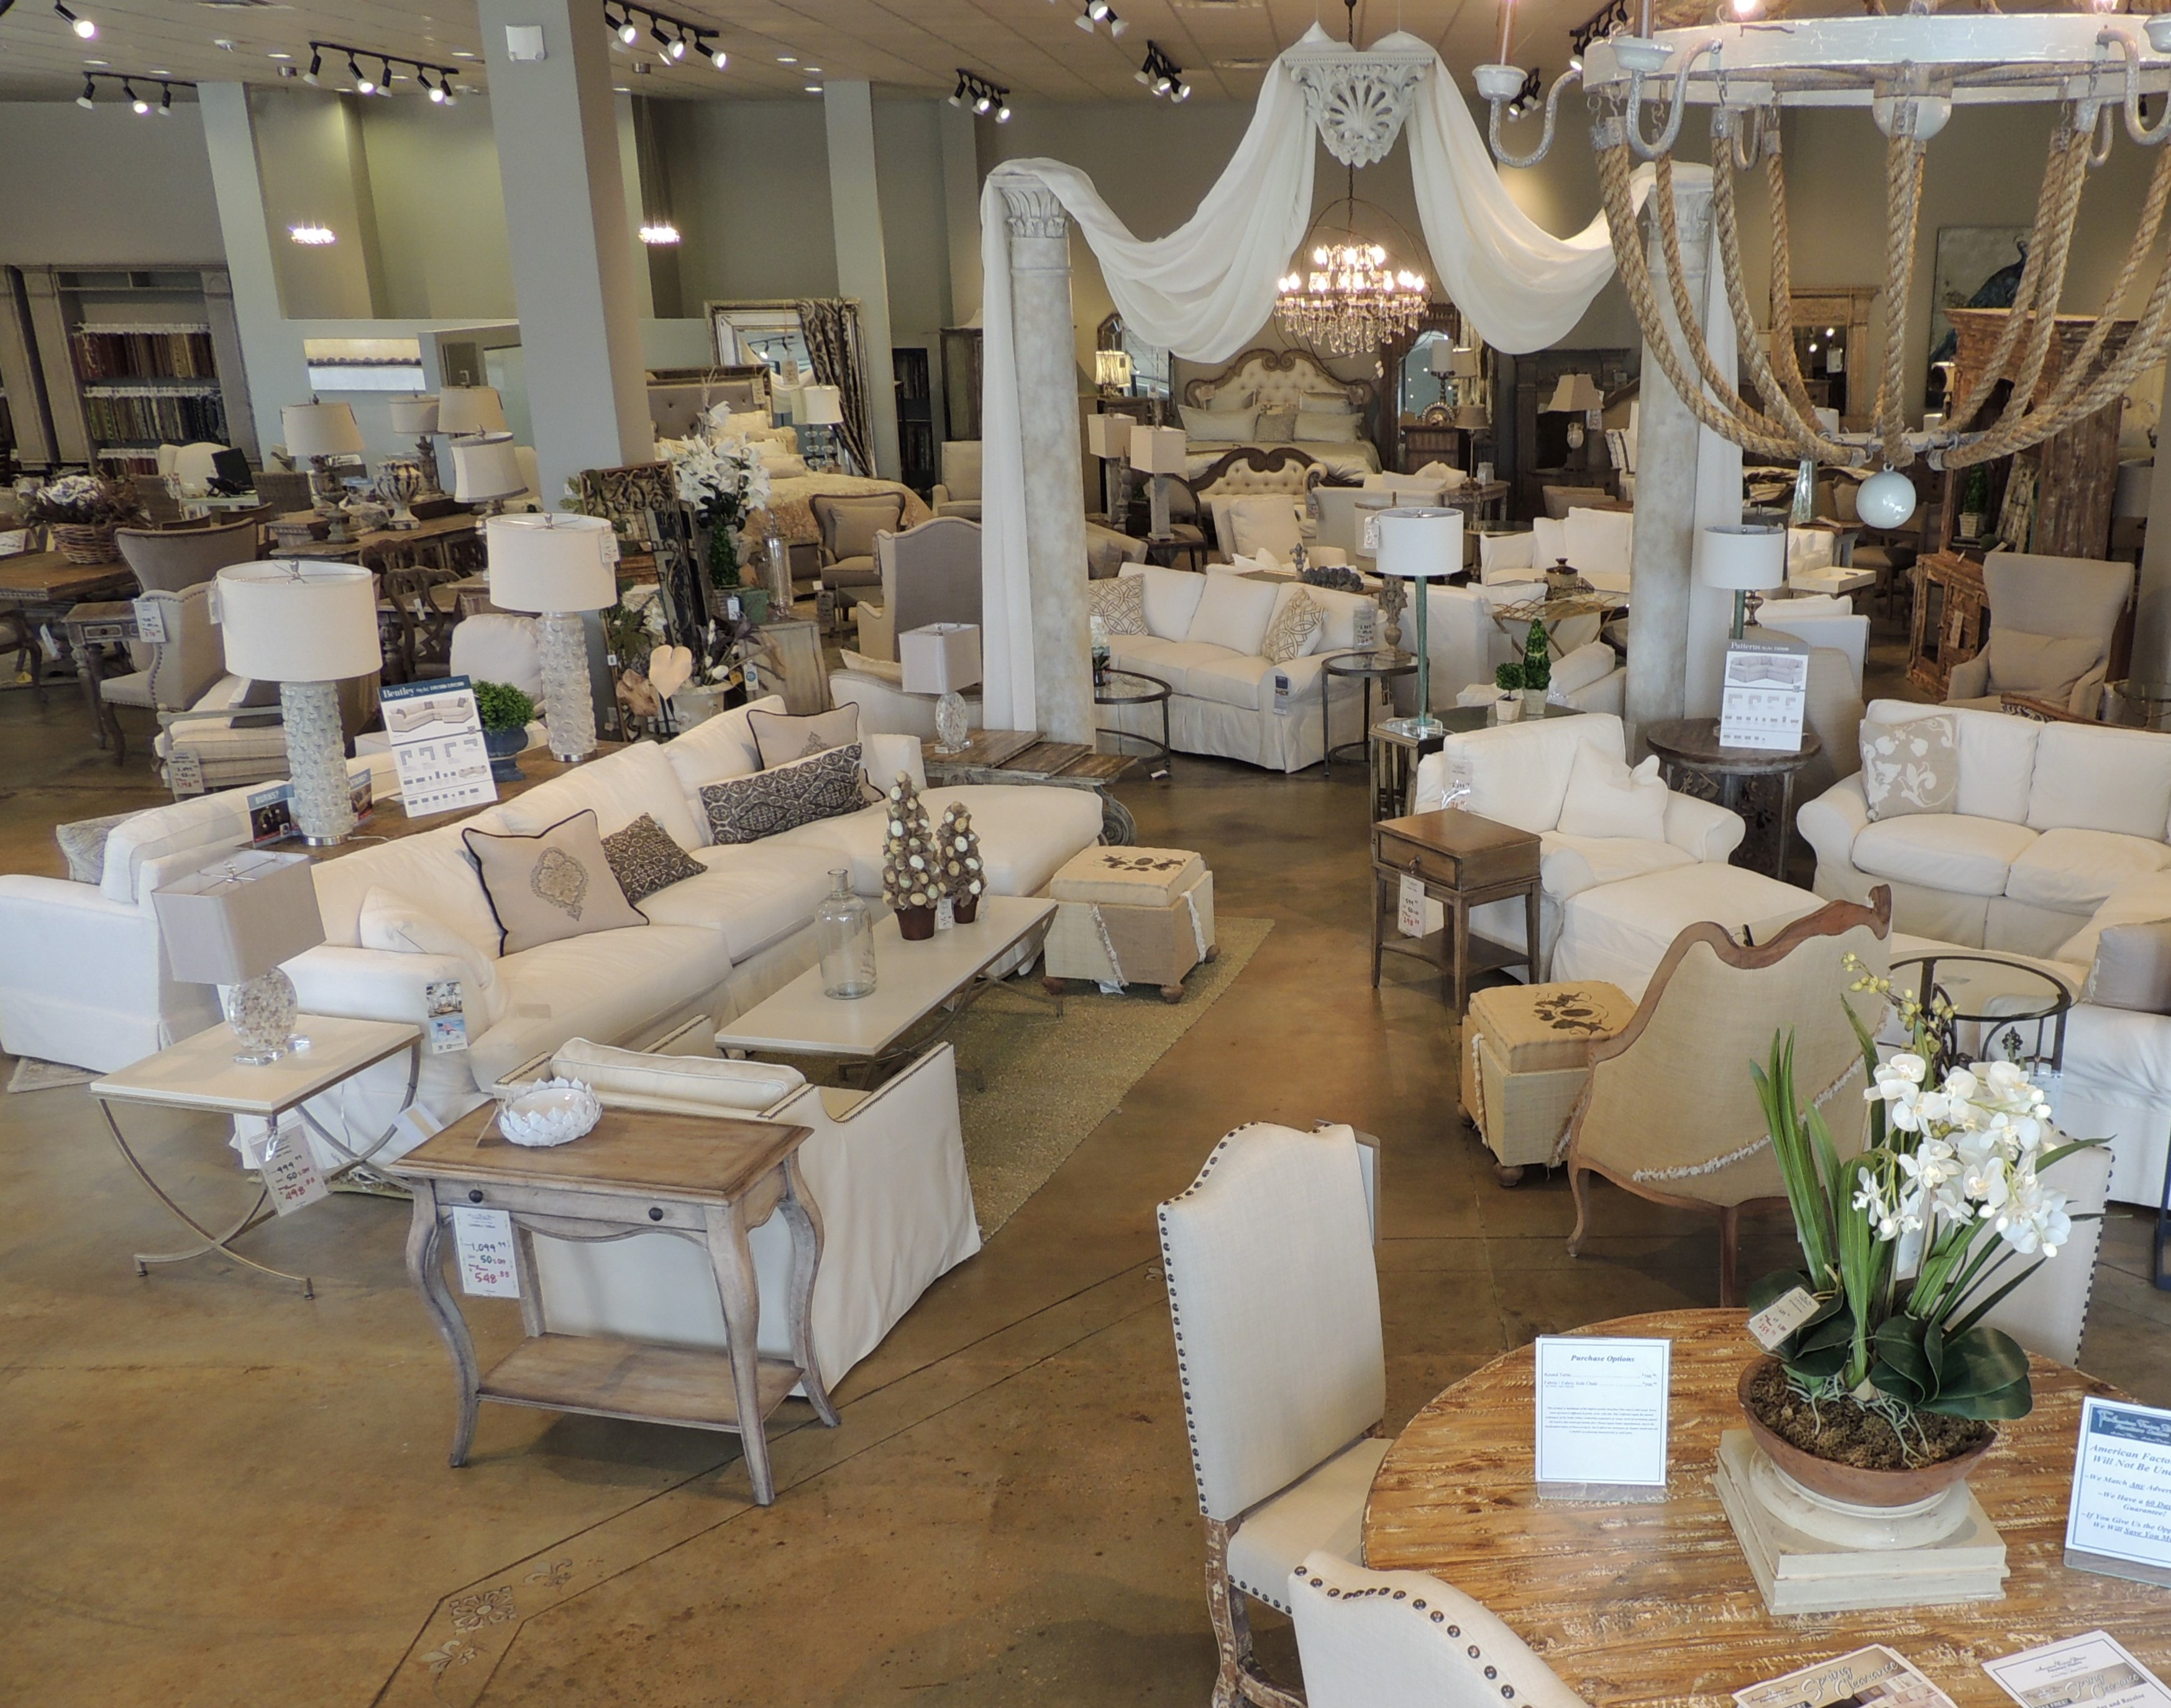 American Factory Furniture located in Mandeville Louisiana AHFA Store Profile. American Factory Furniture Mandeville, Louisiana. View American Factory Direct Furniture Outlets's Retailer Profile. Contact Information. Highway 59 Mandeville, LA